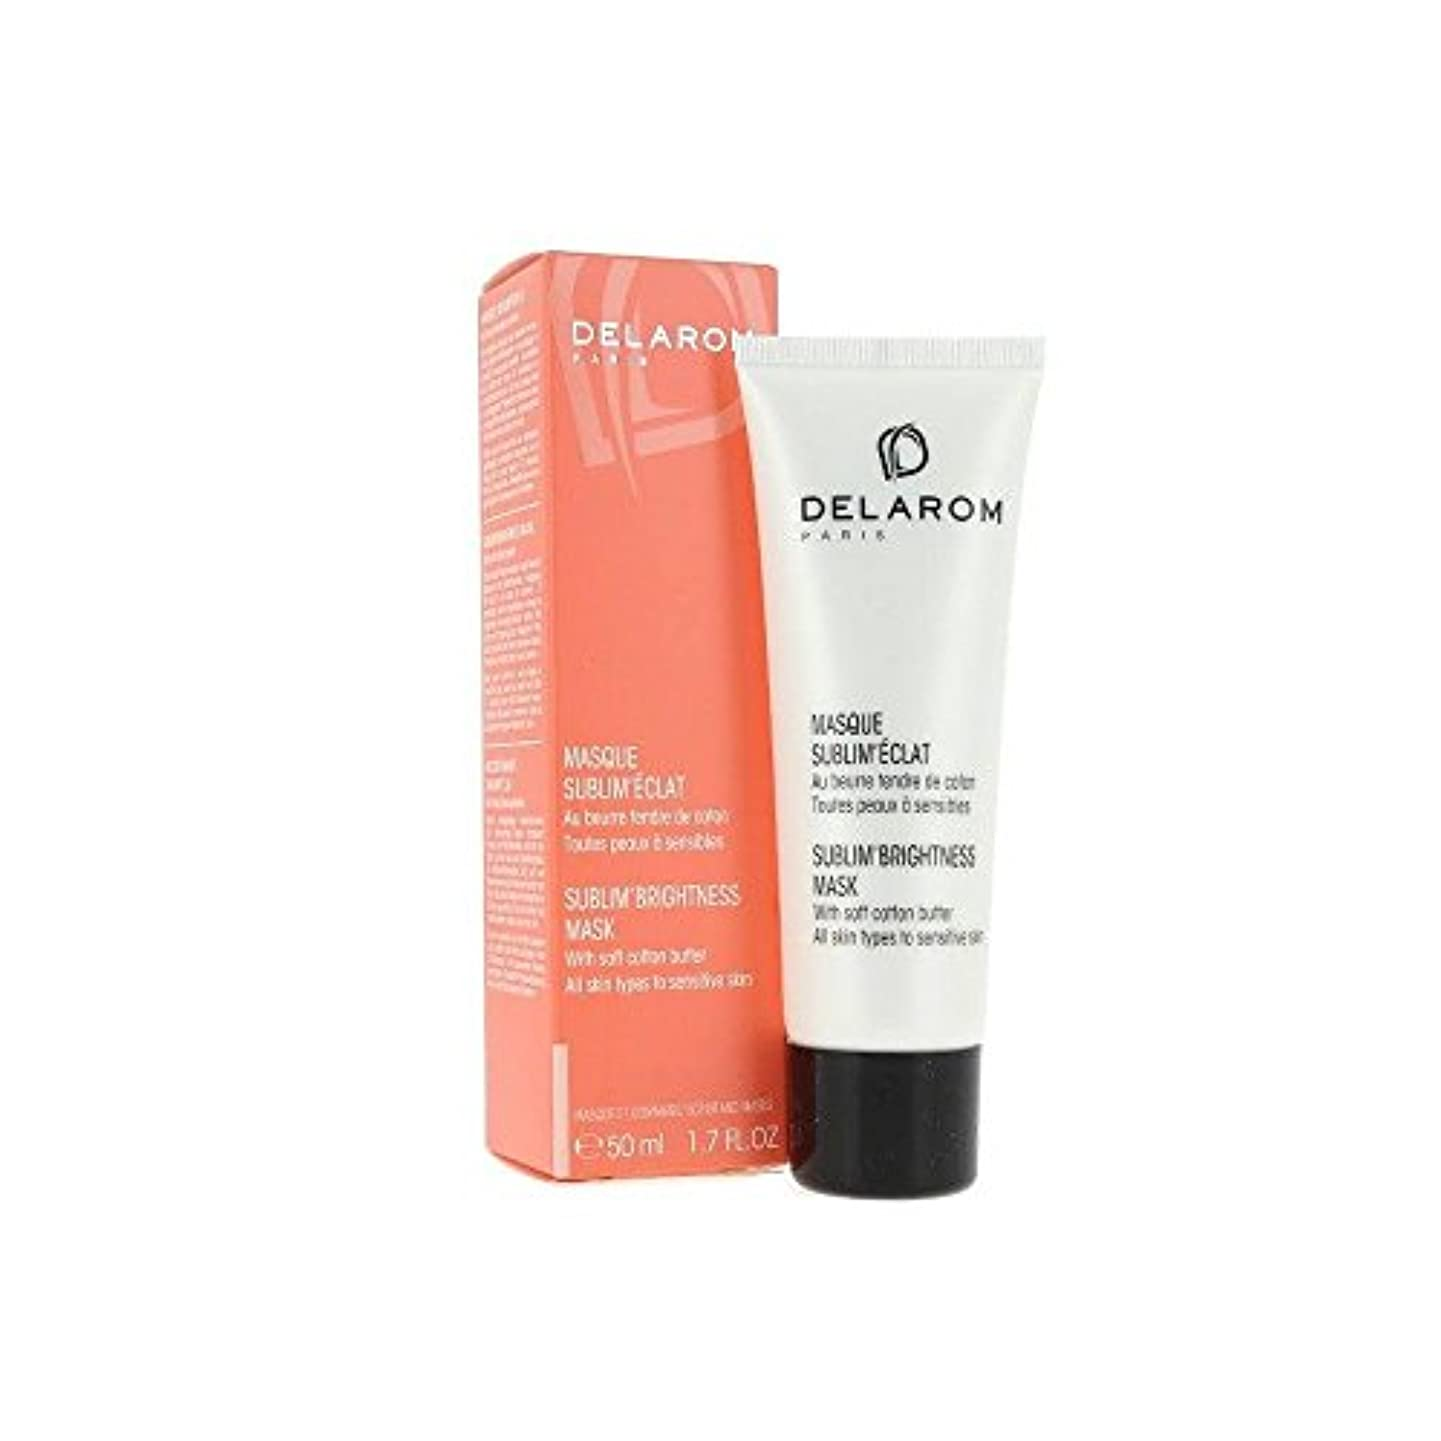 マンモス性交チョークDELAROM Sublim' Brightness Mask - For All Skin Types to Sensitive Skin 50ml/1.7oz並行輸入品